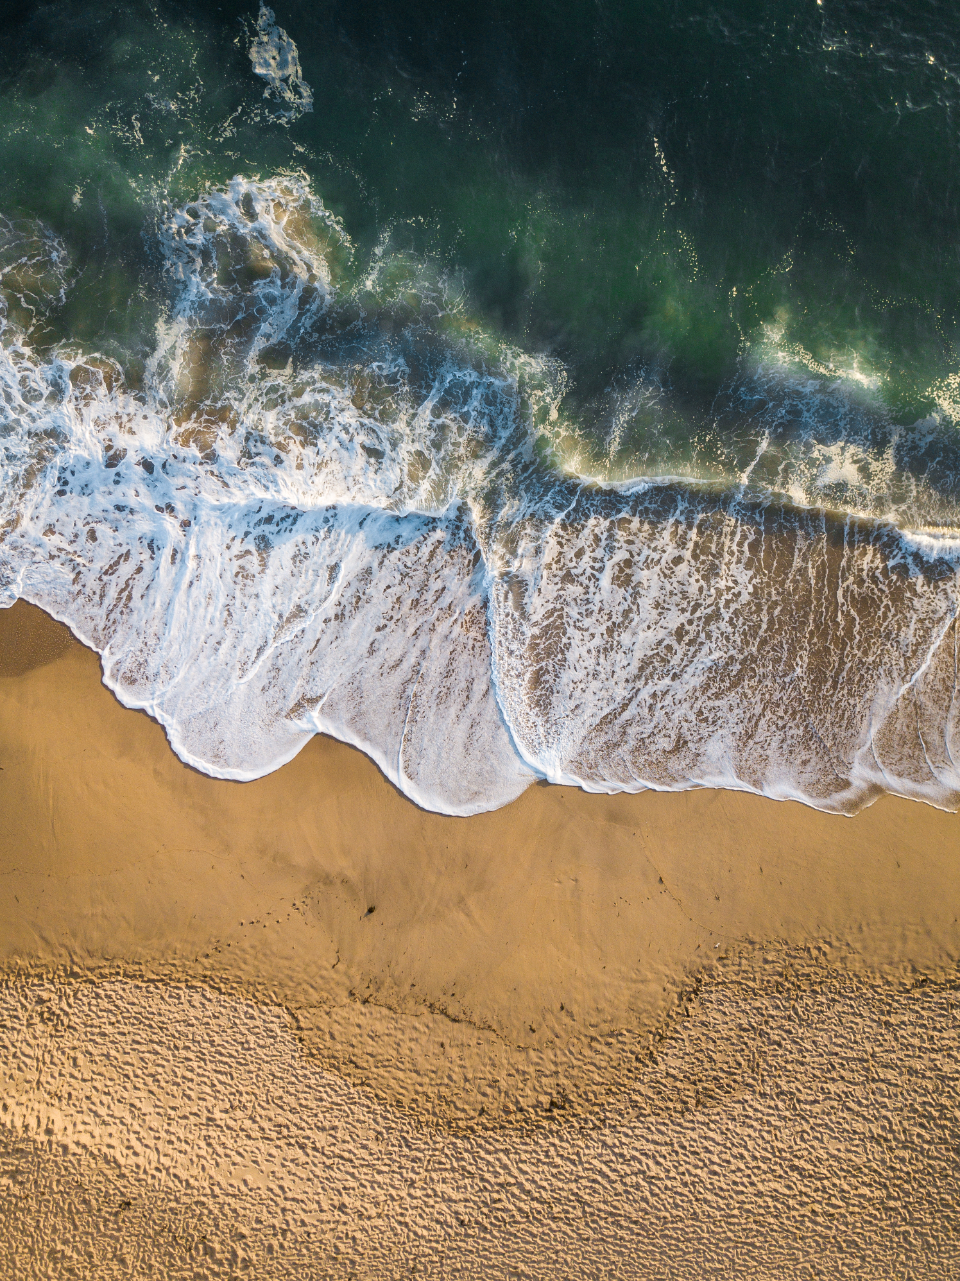 Free stock photo of aerial water